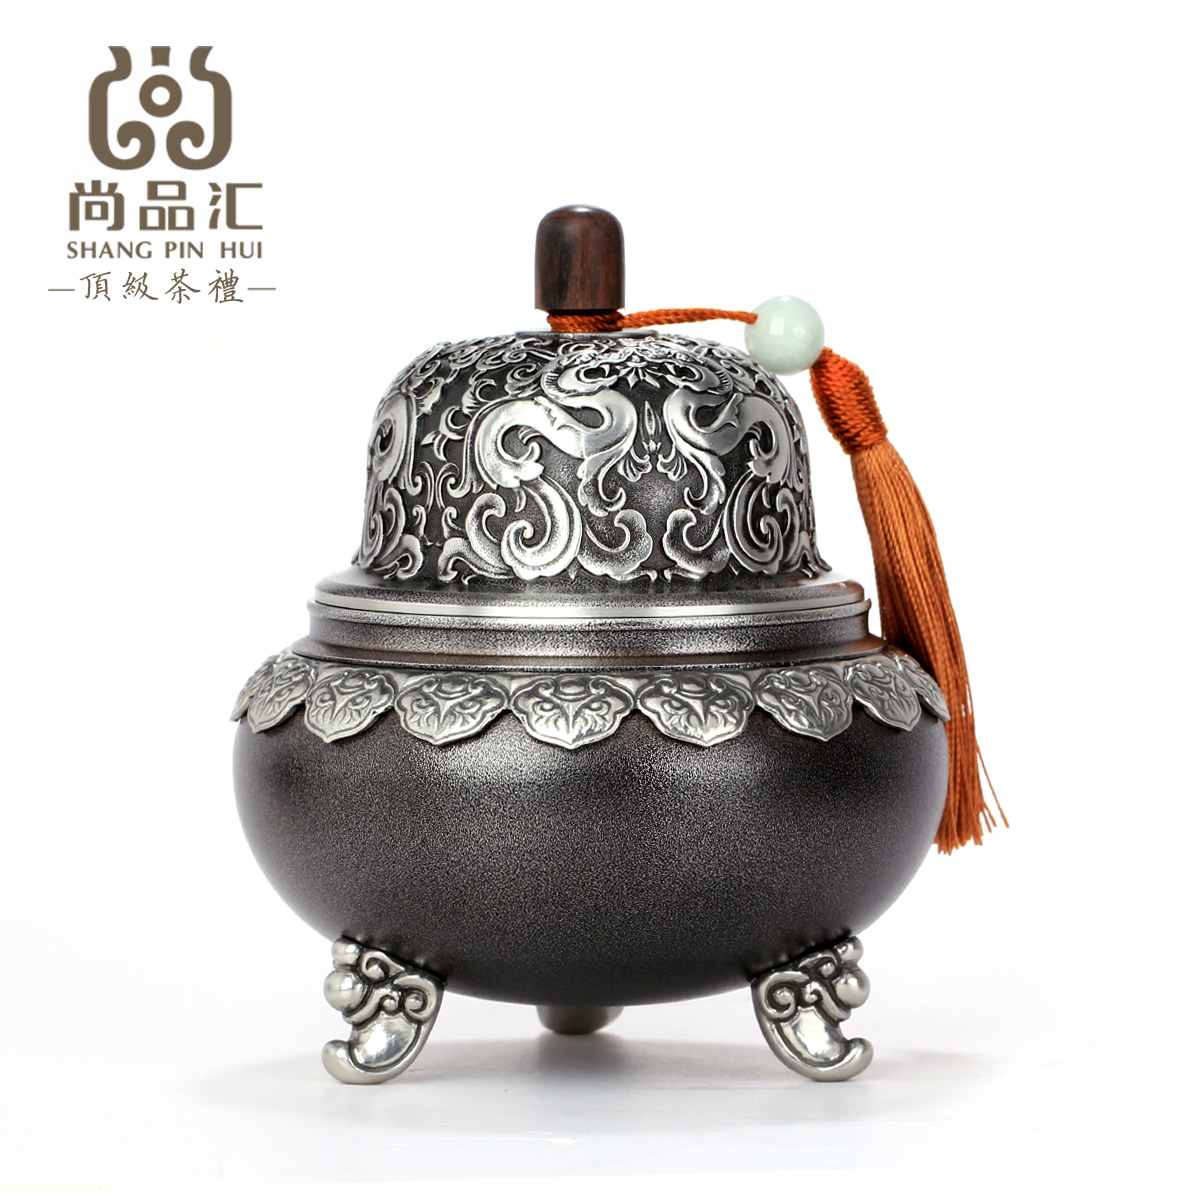 Malaysia still collection unleaded pure tin tea caddy trumpet tea caddy tin cans sealed storage boxes of tea caddy tin metal